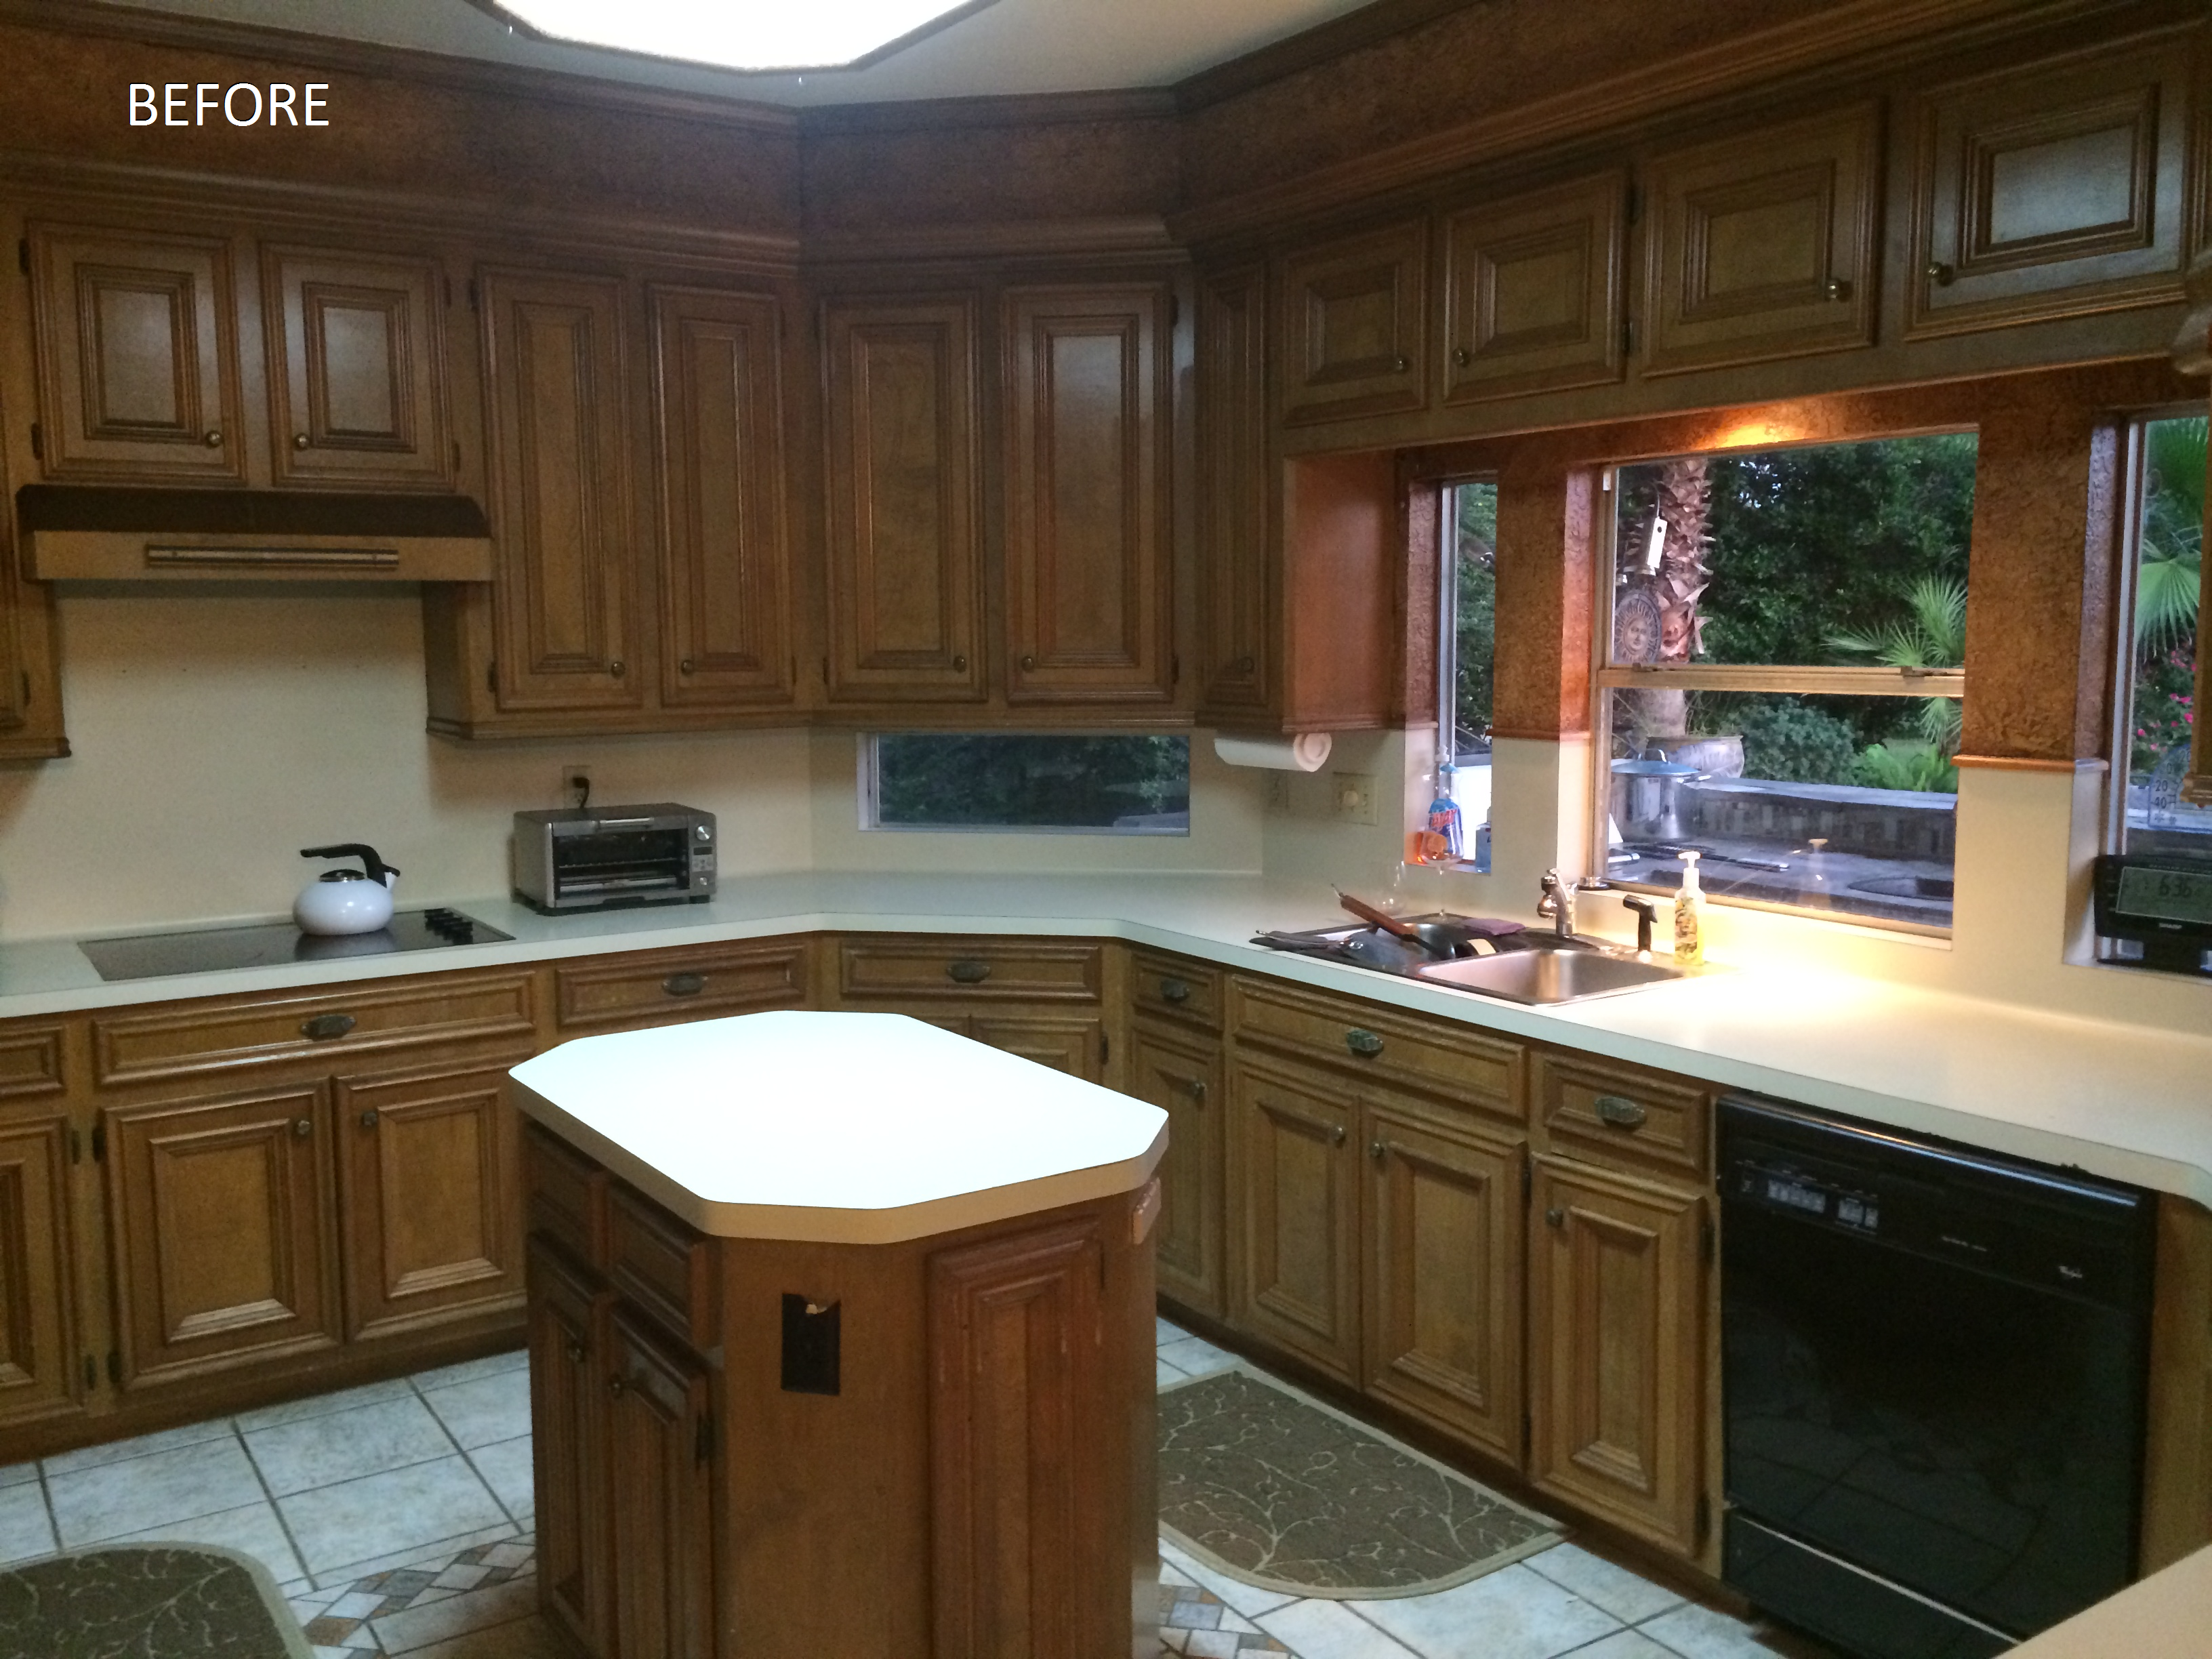 Kitchen designs houston tx - Need Kitchen Remodeling In Houston Tx Look No Further Than Outdoor Homescapes Of Houston